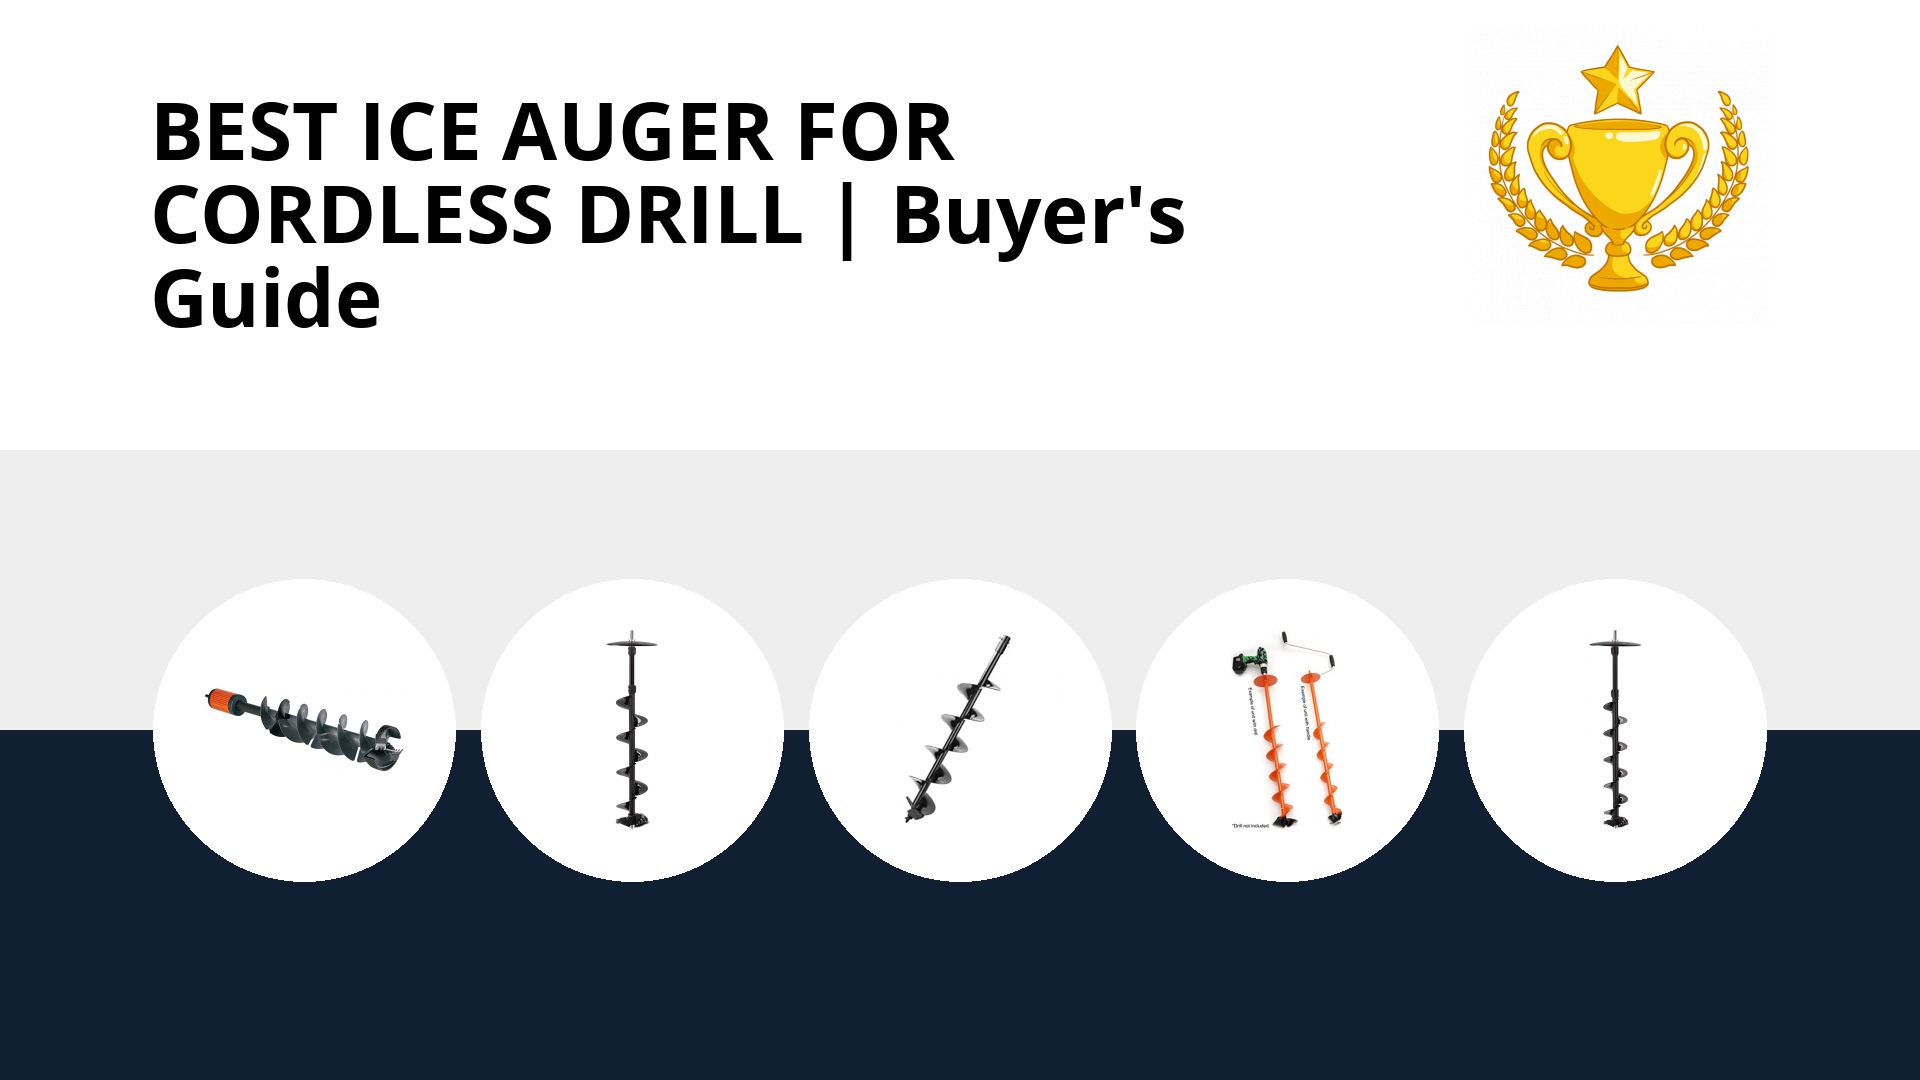 Best Ice Auger For Cordless Drill: image